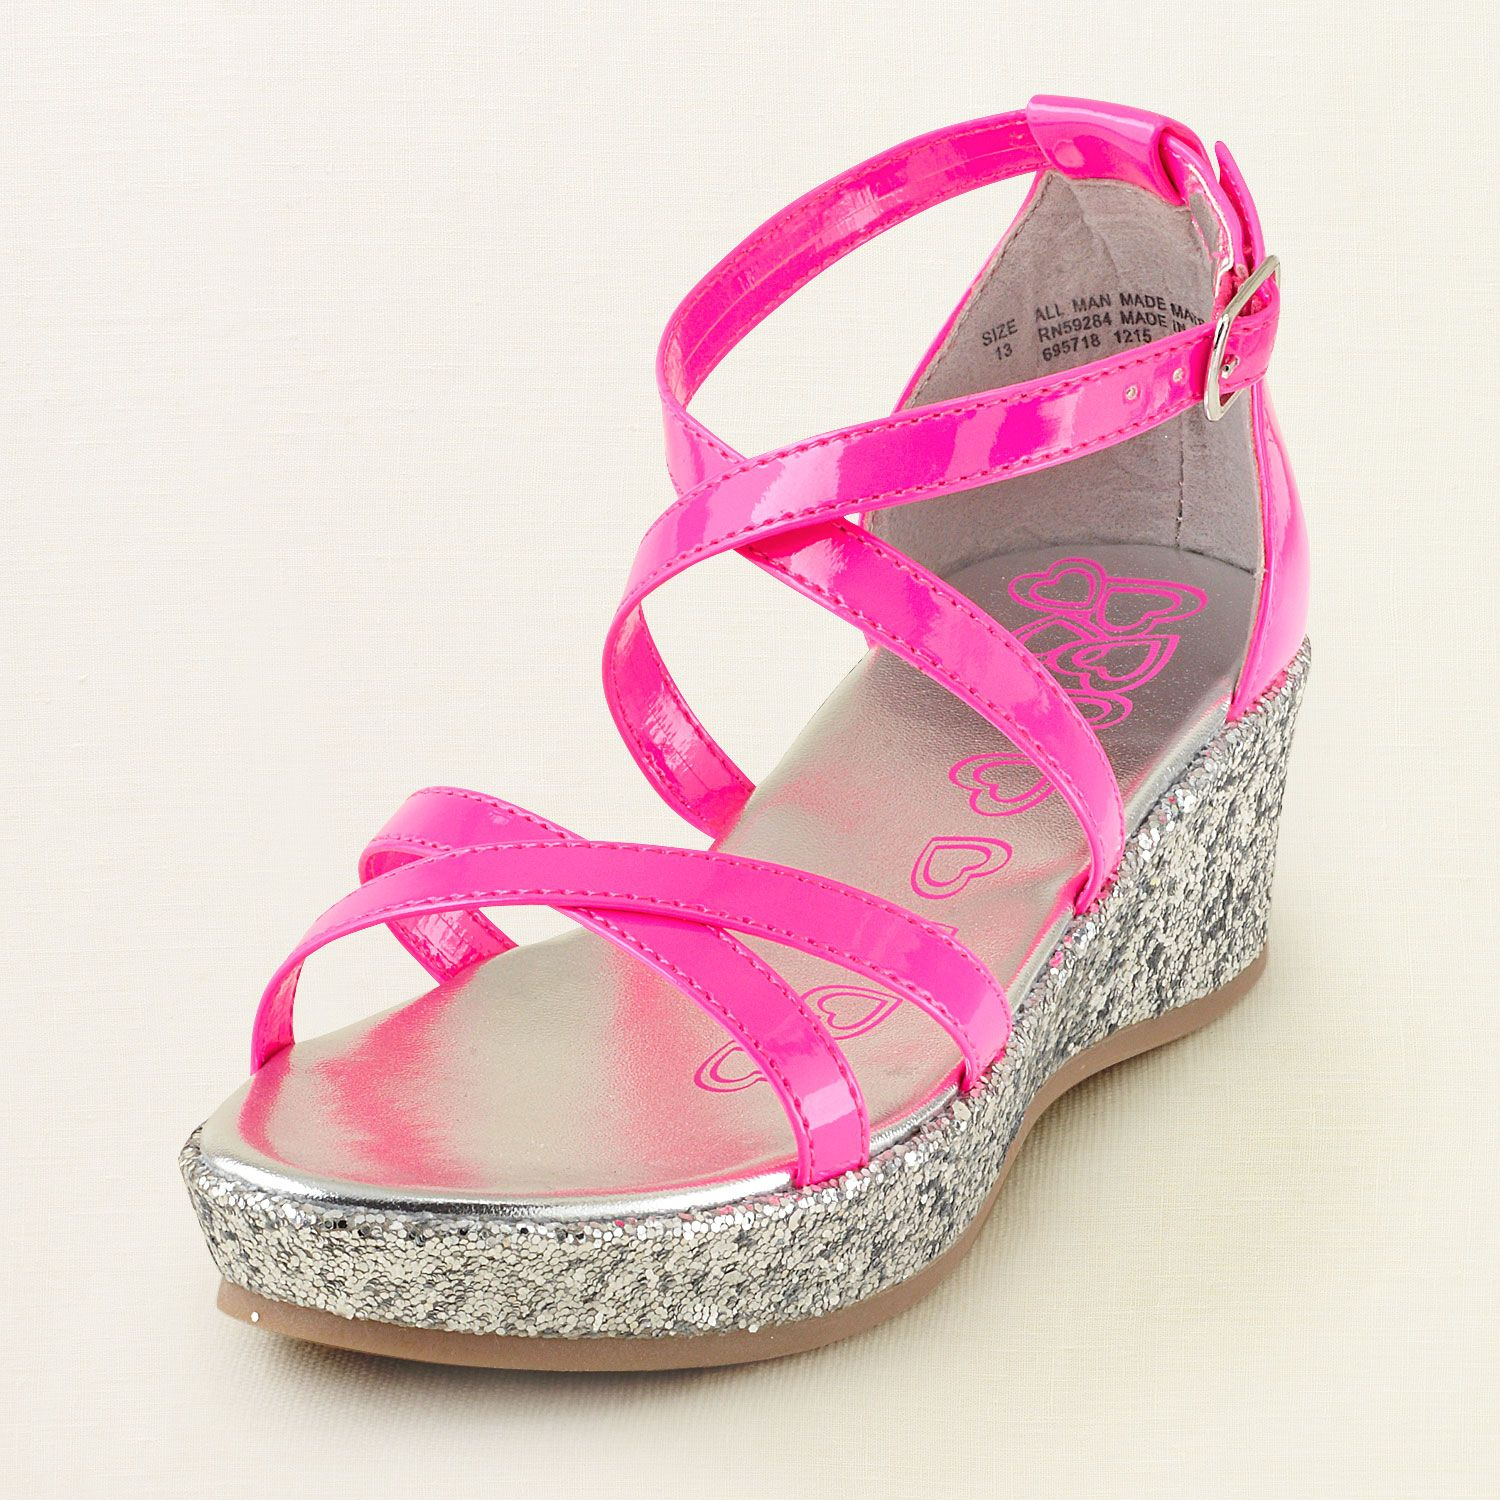 c82fdc5f609c girl - shoes - sparkle platform sandal